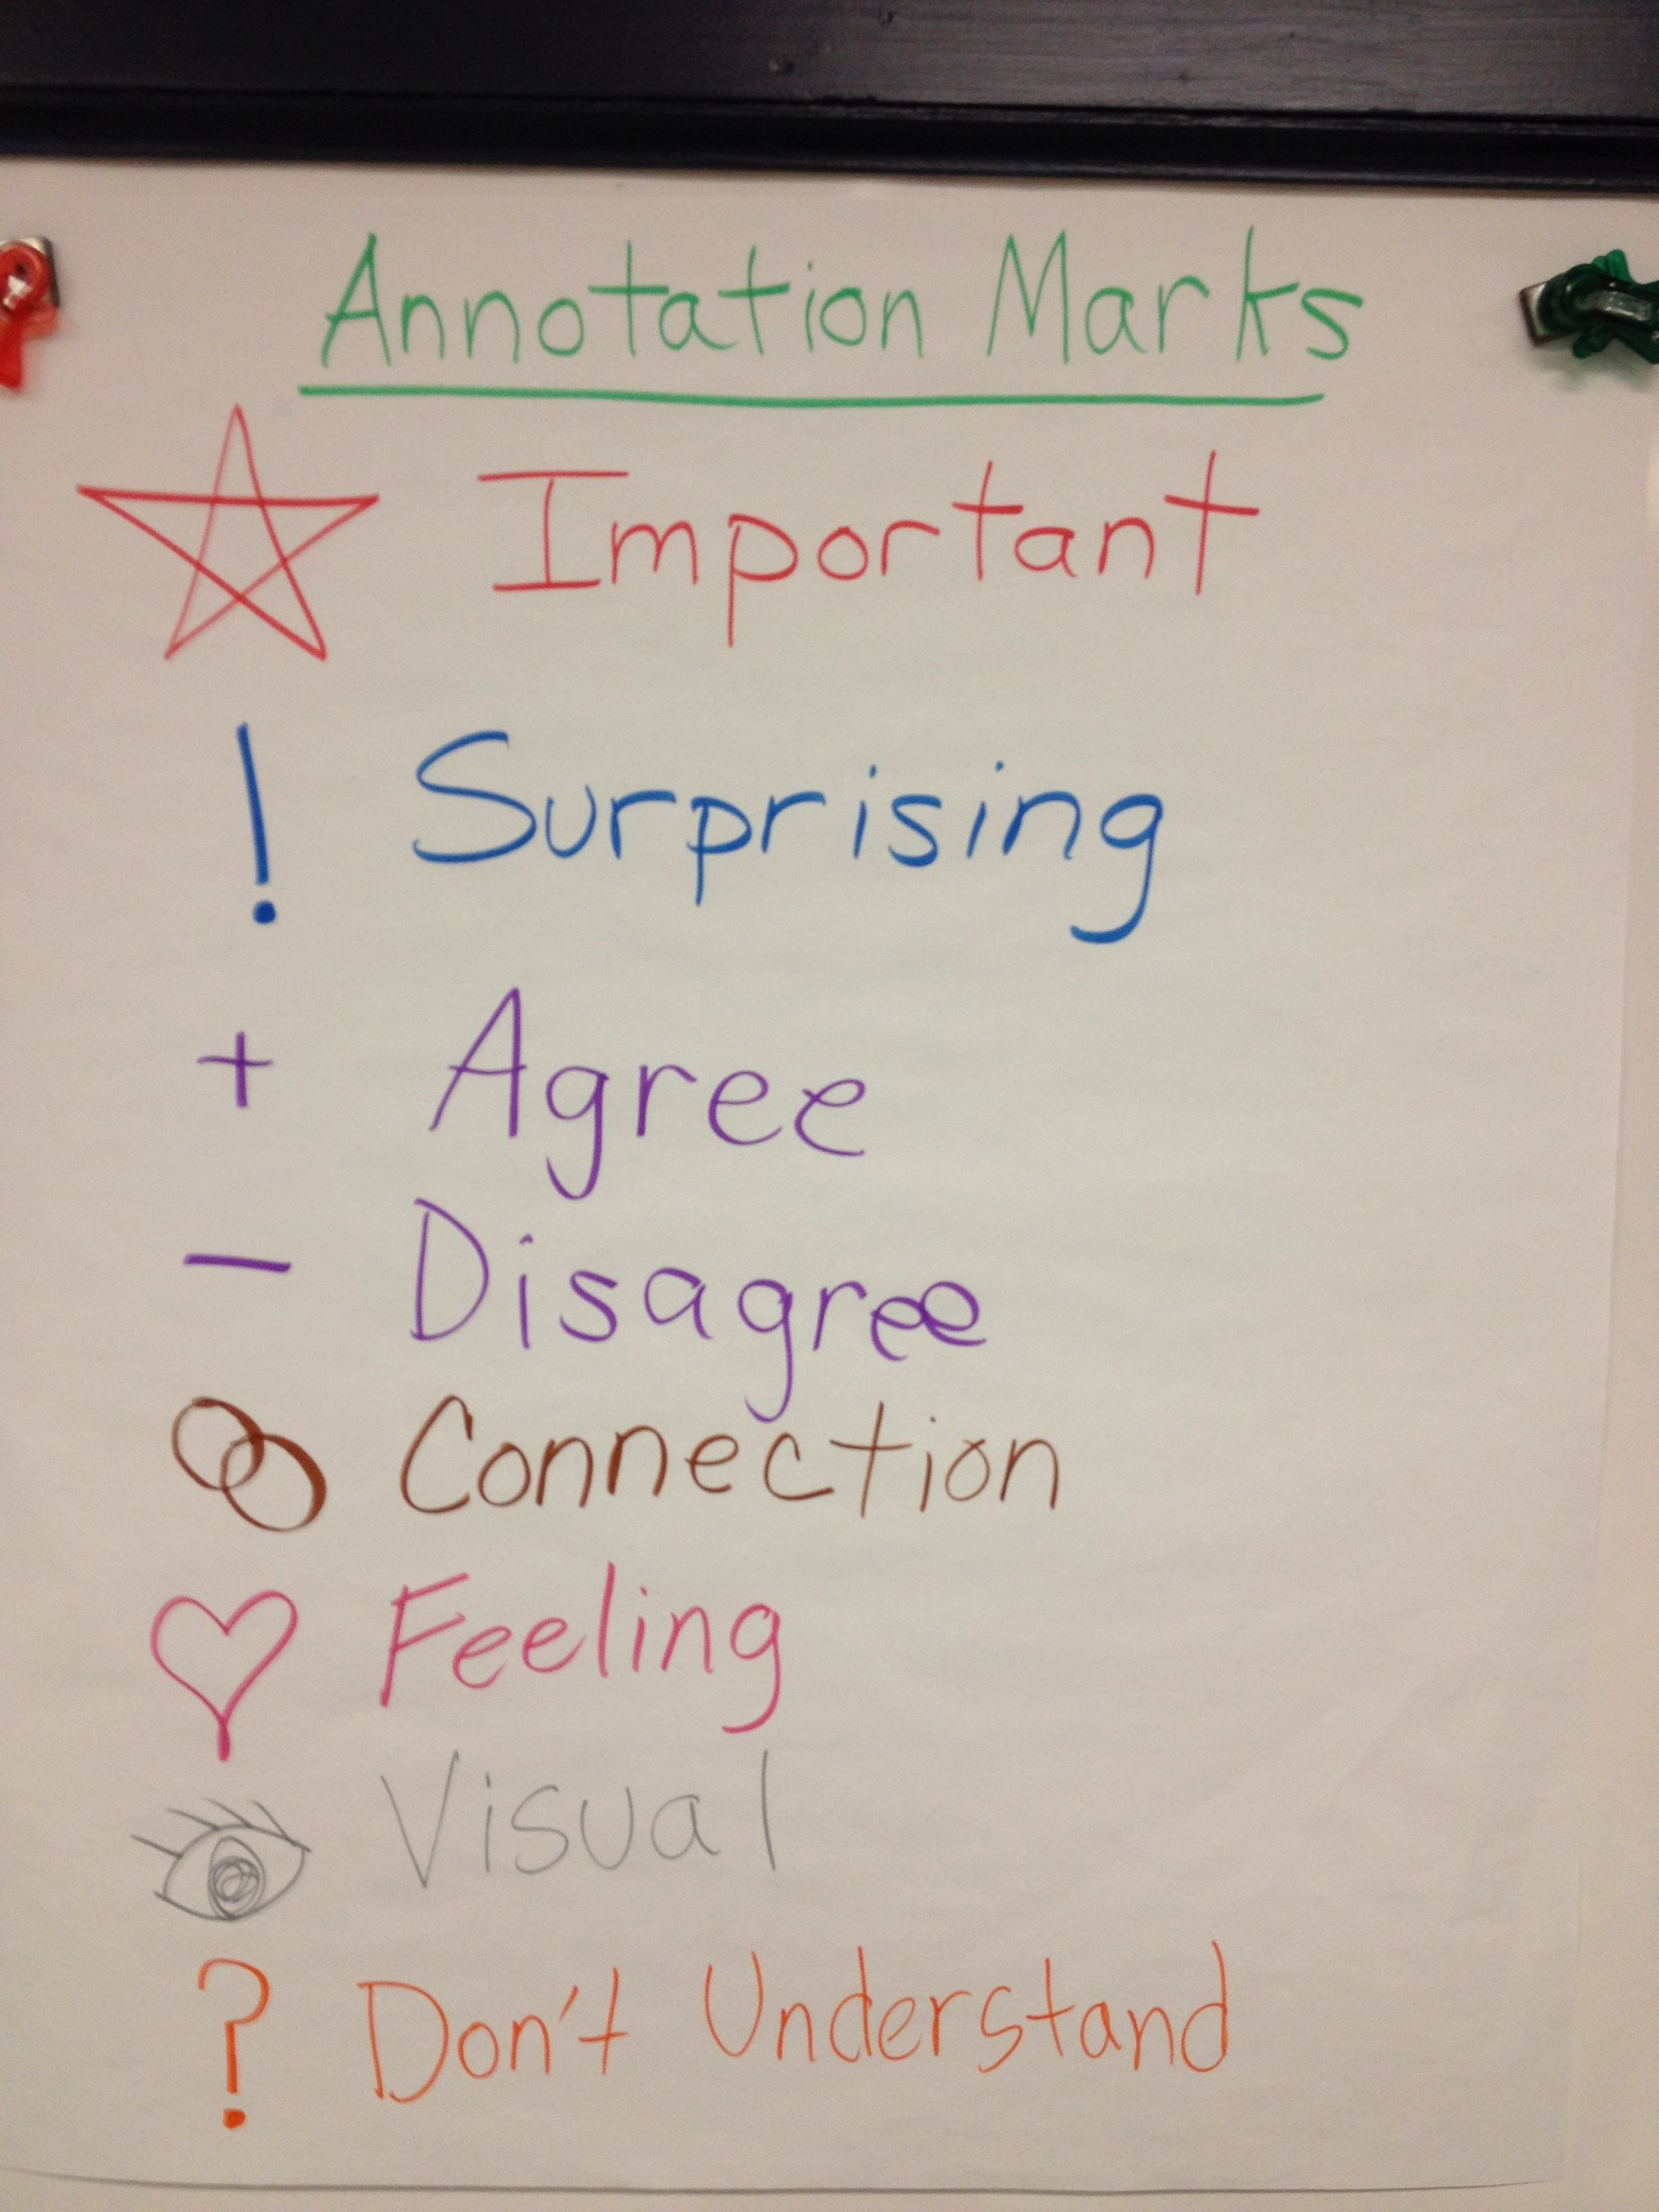 Annotation Marks